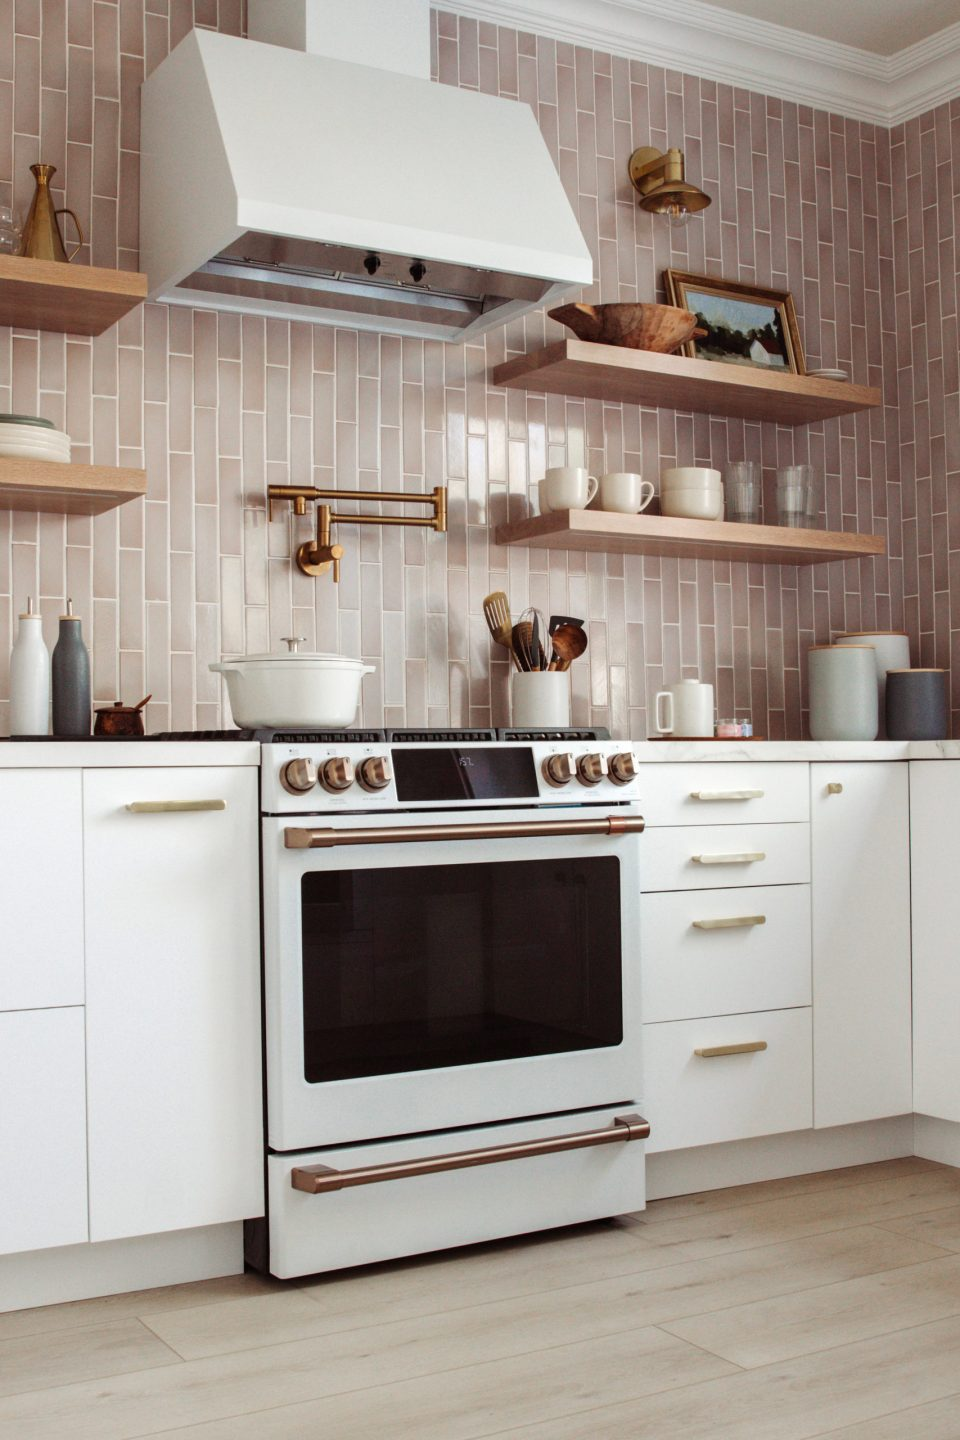 A white stove set in white modular cabinets with brass hardware against mauve backsplash that goes all the way to the ceiling!